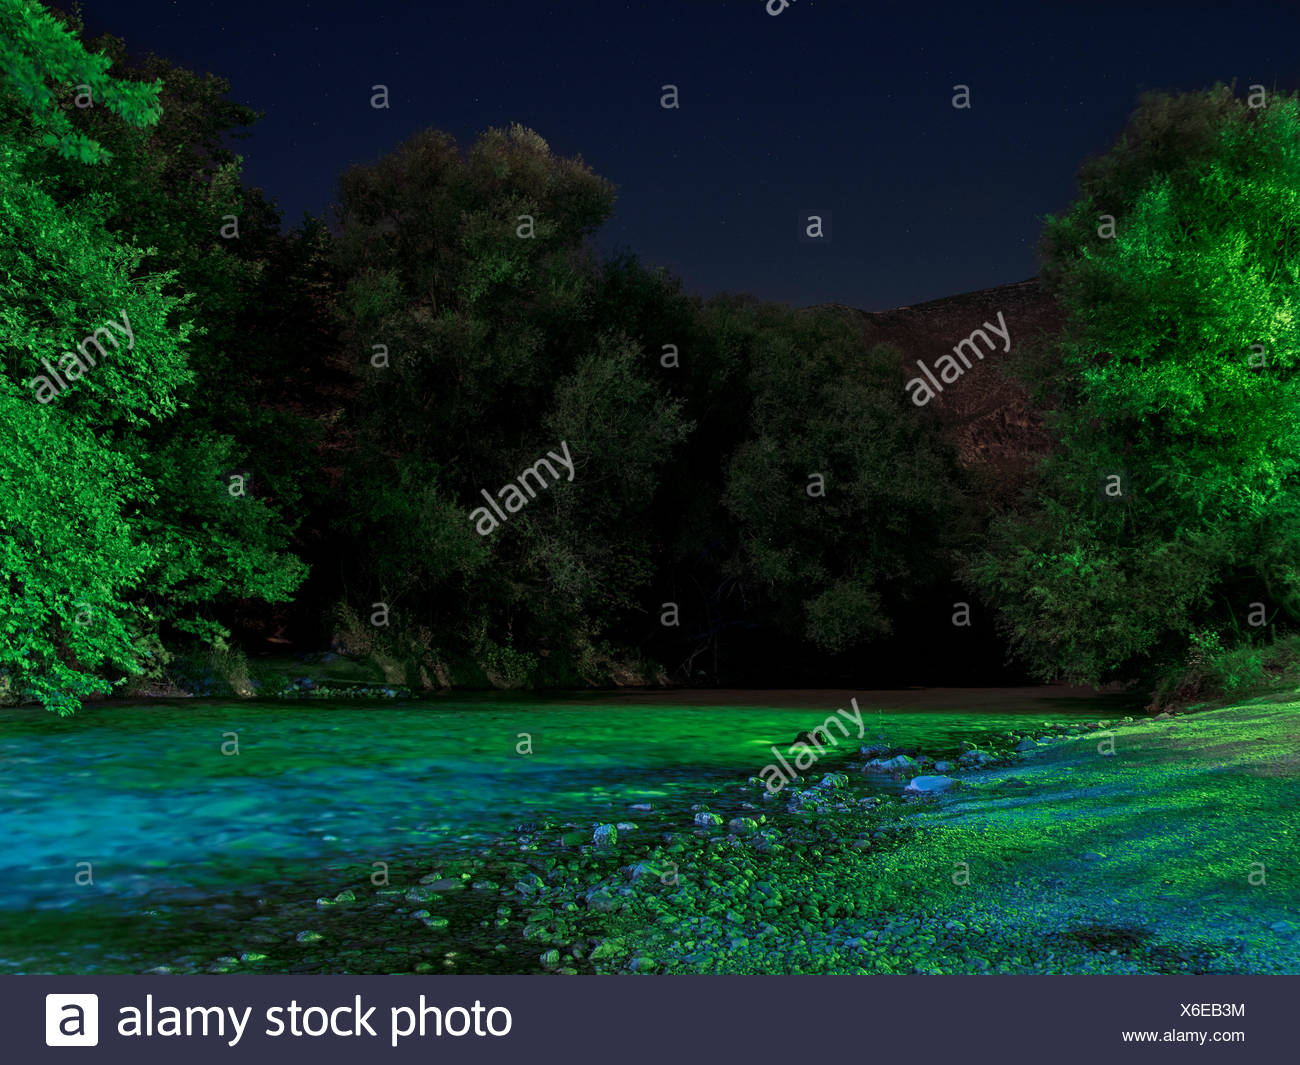 Ancient Greeks believed Charon the ferryman took souls to Hades across the Acheron River. - Stock Image